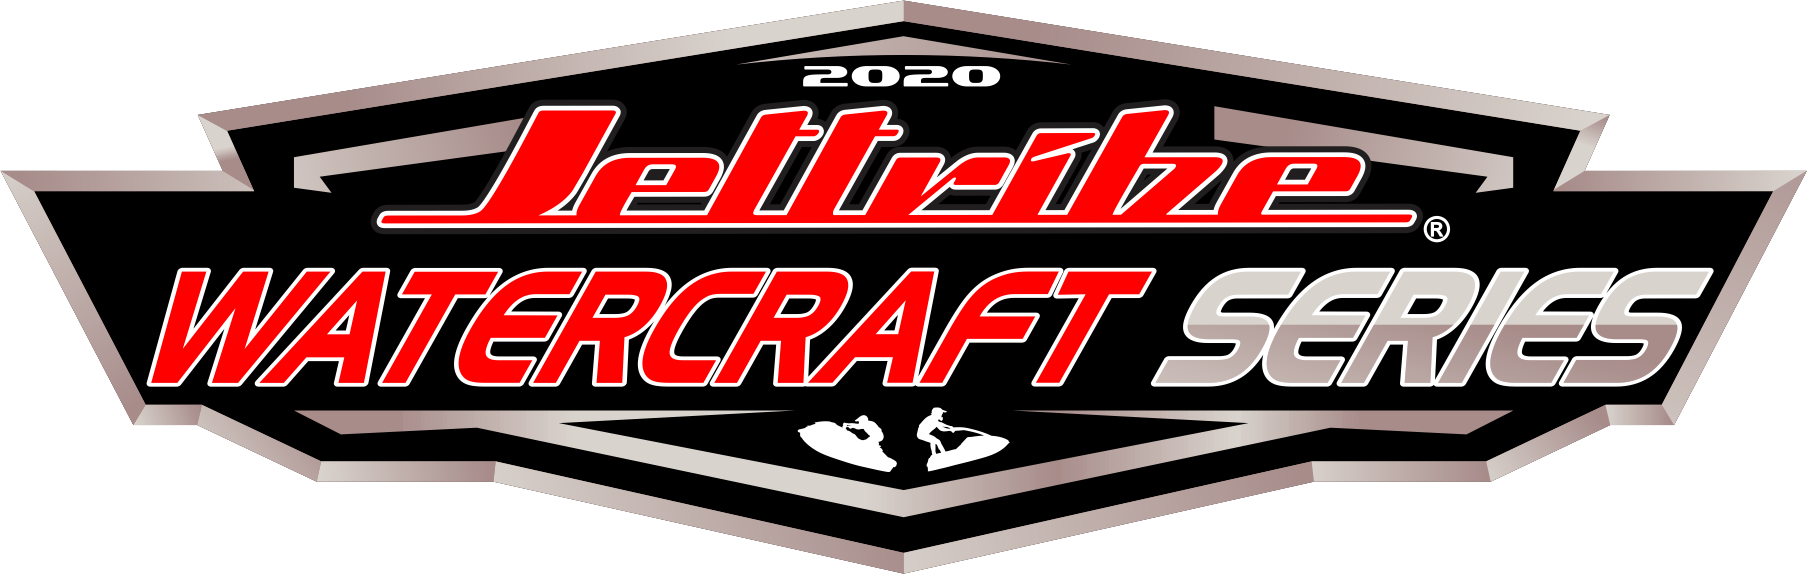 jettribe-watercraft-series-main-logo.png